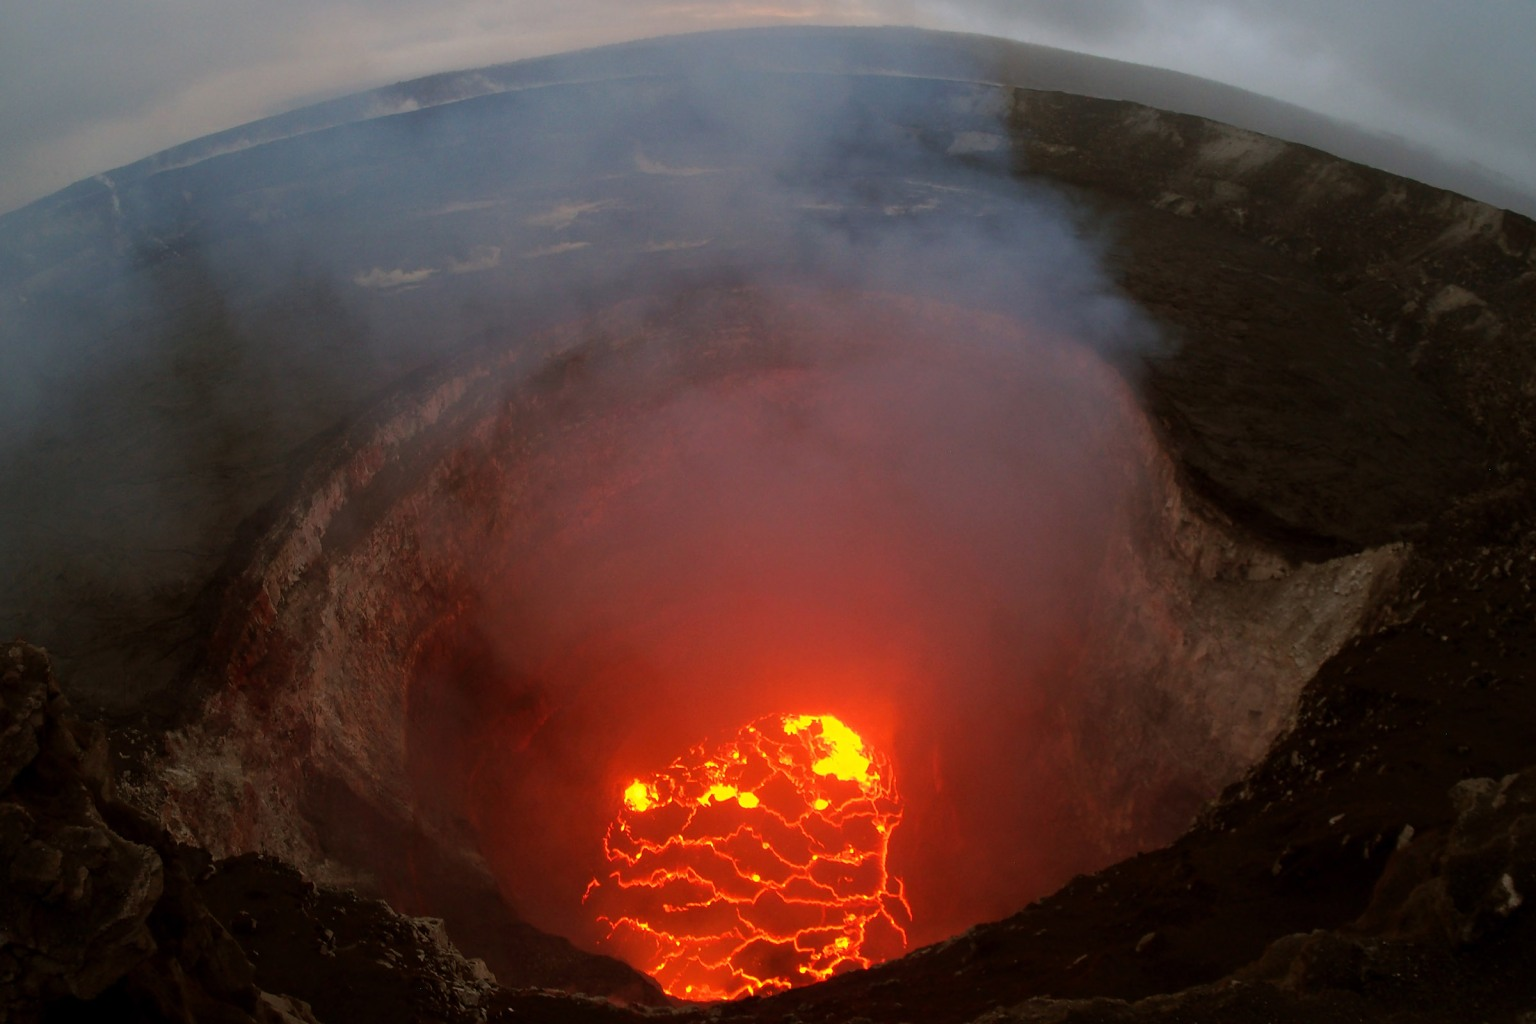 A U.S. Geological Survey photo shows the lava lake from Hawaii's erupted Kilauea volcano on May 6 near Pahoa. Hawaii's governor warned May 11 that more evacuations might be needed after new forecasts that more eruptions could hurl large rocks up to half a mile. U.S. Geological Survey via Getty Images